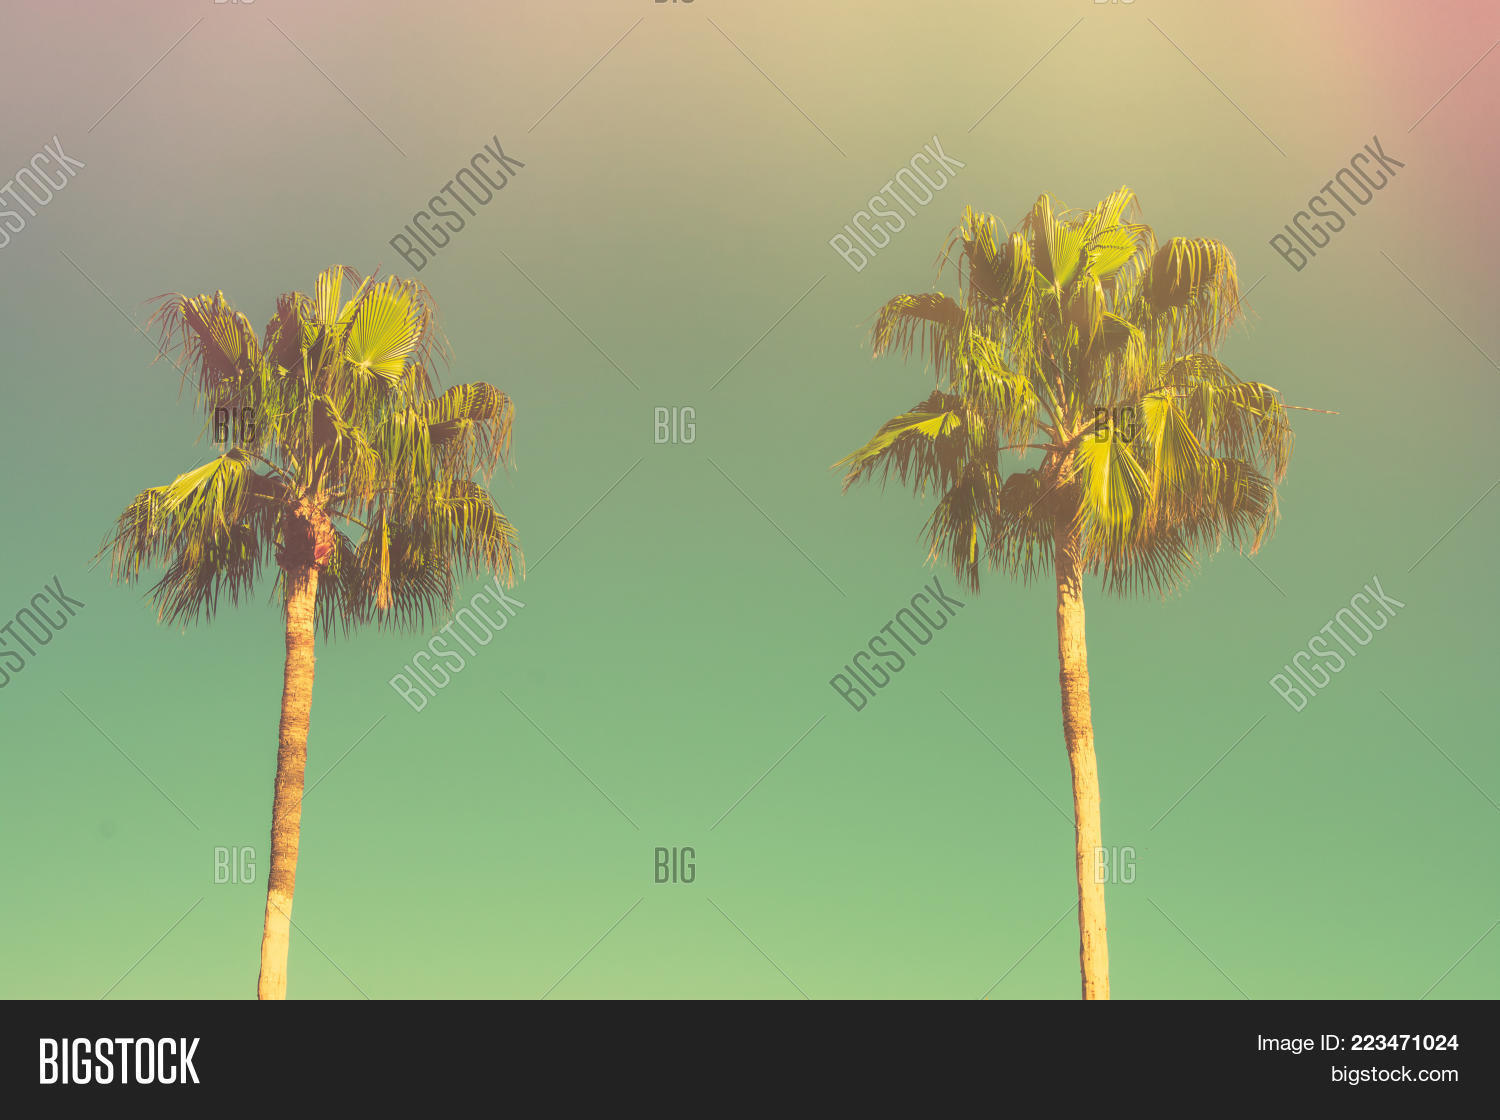 Two Palm Trees On Image & Photo (Free Trial) | Bigstock